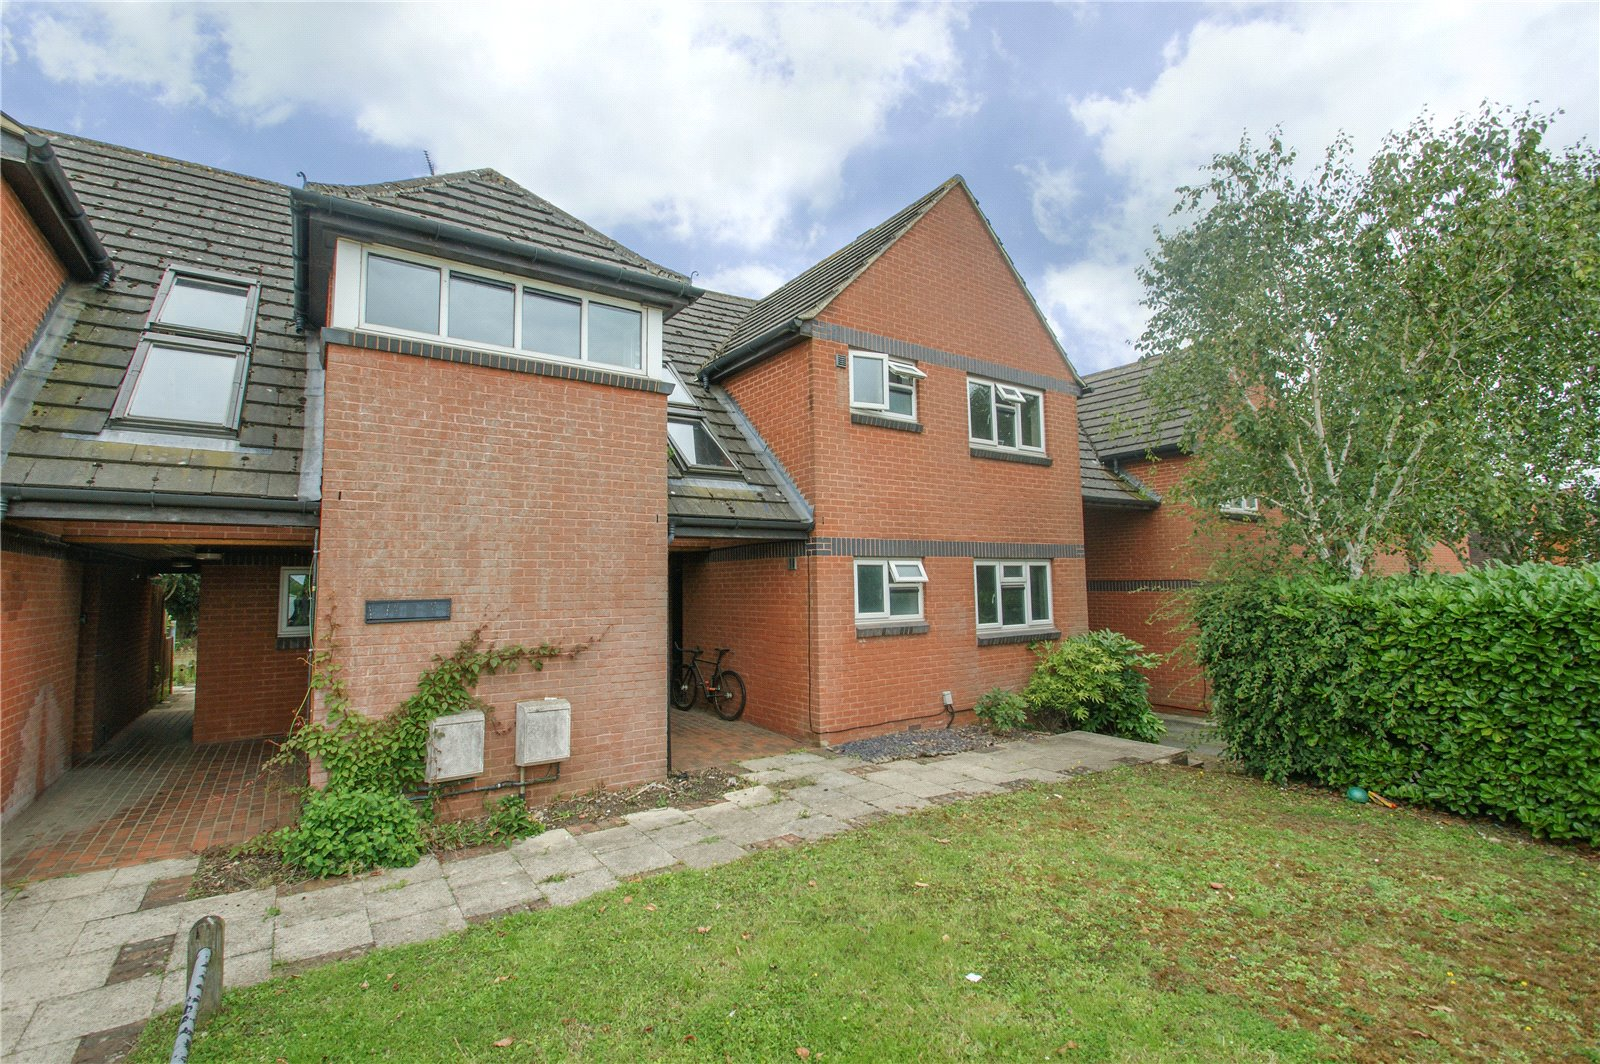 1 Bedroom Apartment Flat for sale in Toutley Road, Wokingham, Berkshire, RG41